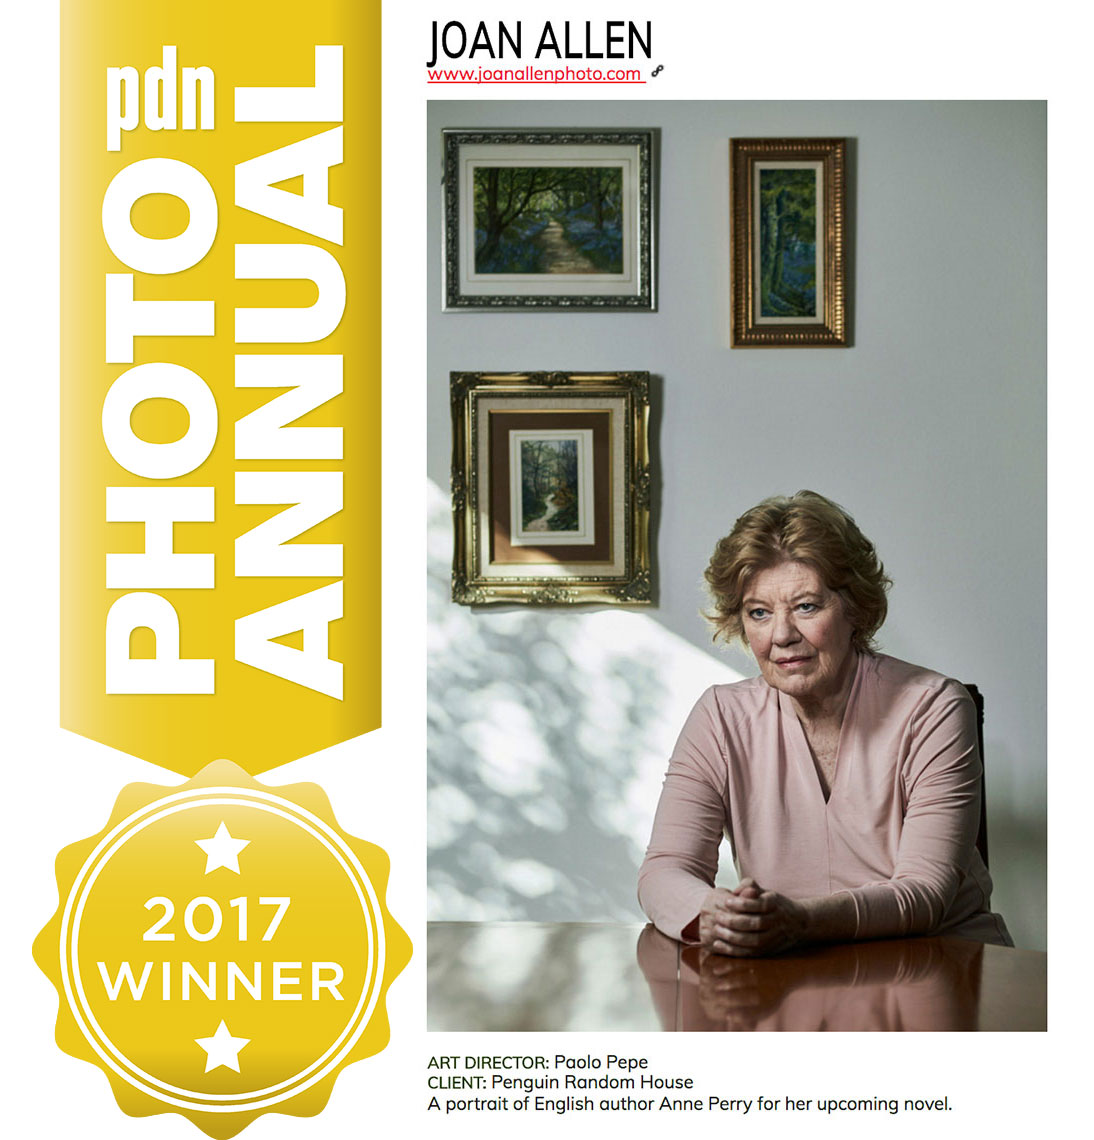 PDN-Annual-2017_Anne-Perry-by-Joan-Allen